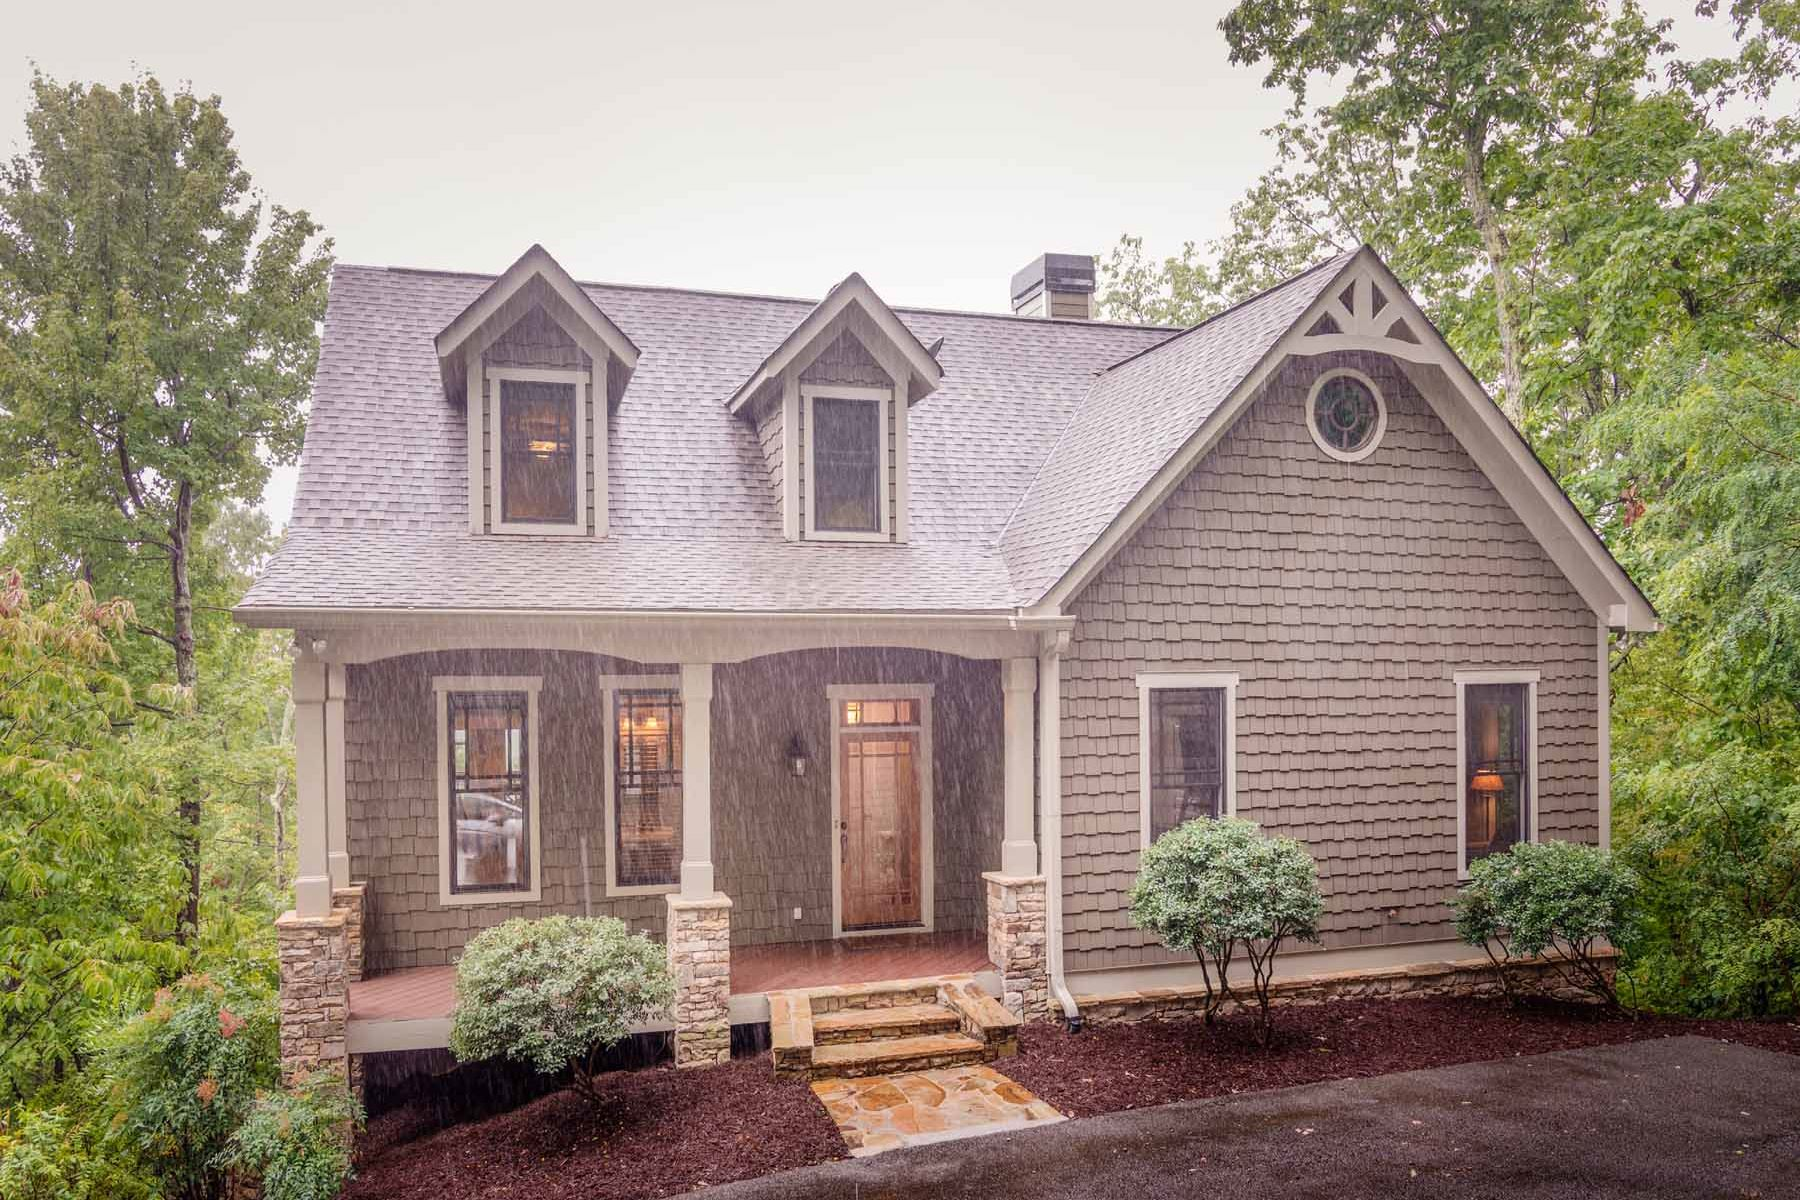 Maison unifamiliale pour l Vente à Mountain Privacy In Gated Community Only 1 Hour From Atlanta 1087 Woodland Trace Big Canoe, Georgia, 30143 États-Unis